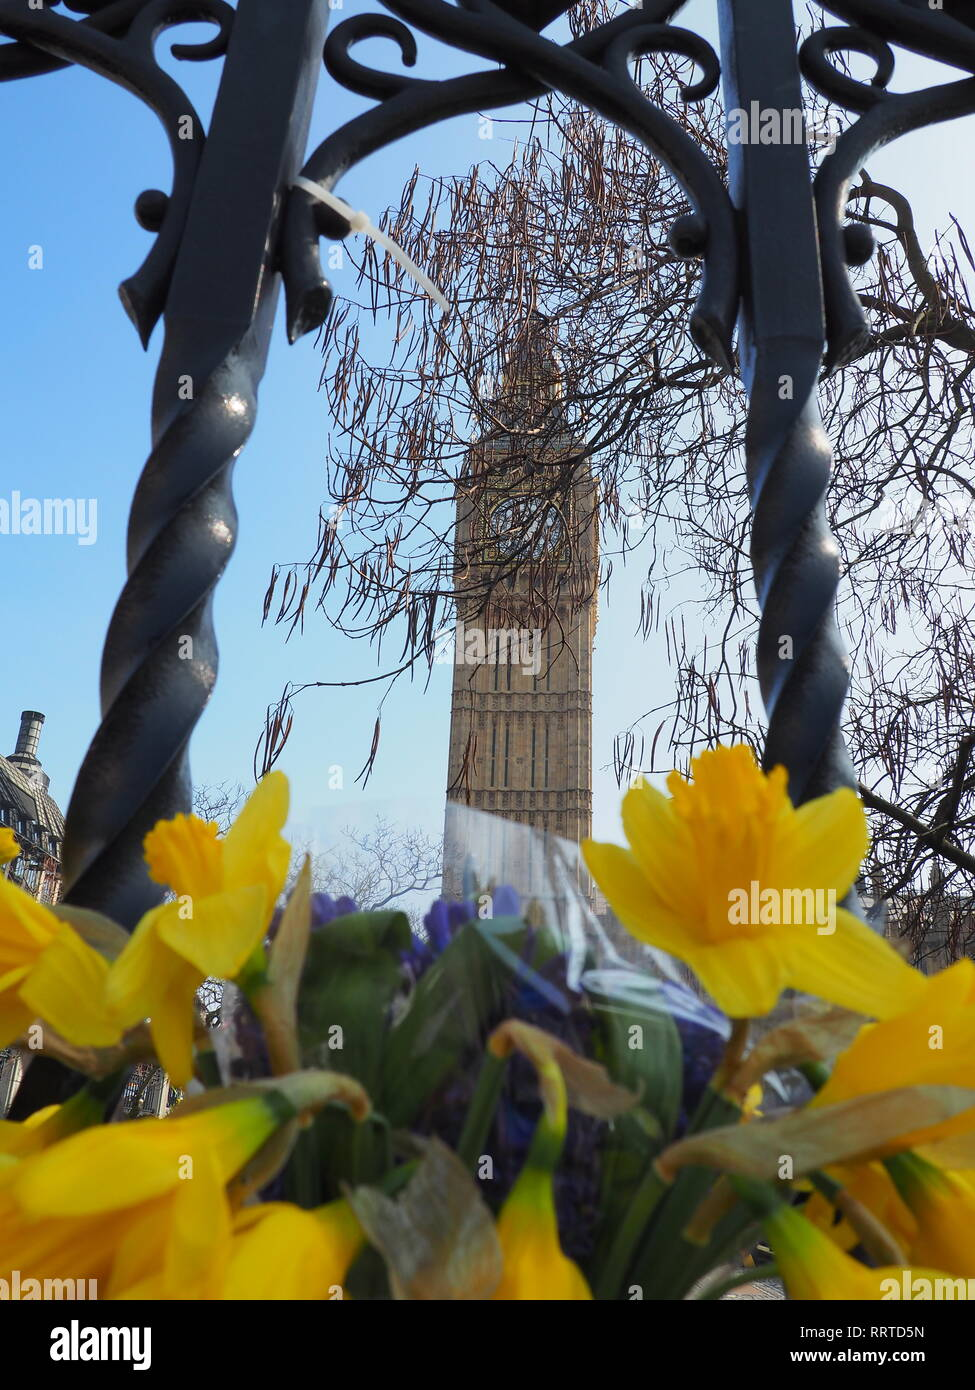 Flowers outside Westminster after the terrorist attack in March 2017 - London - Stock Image